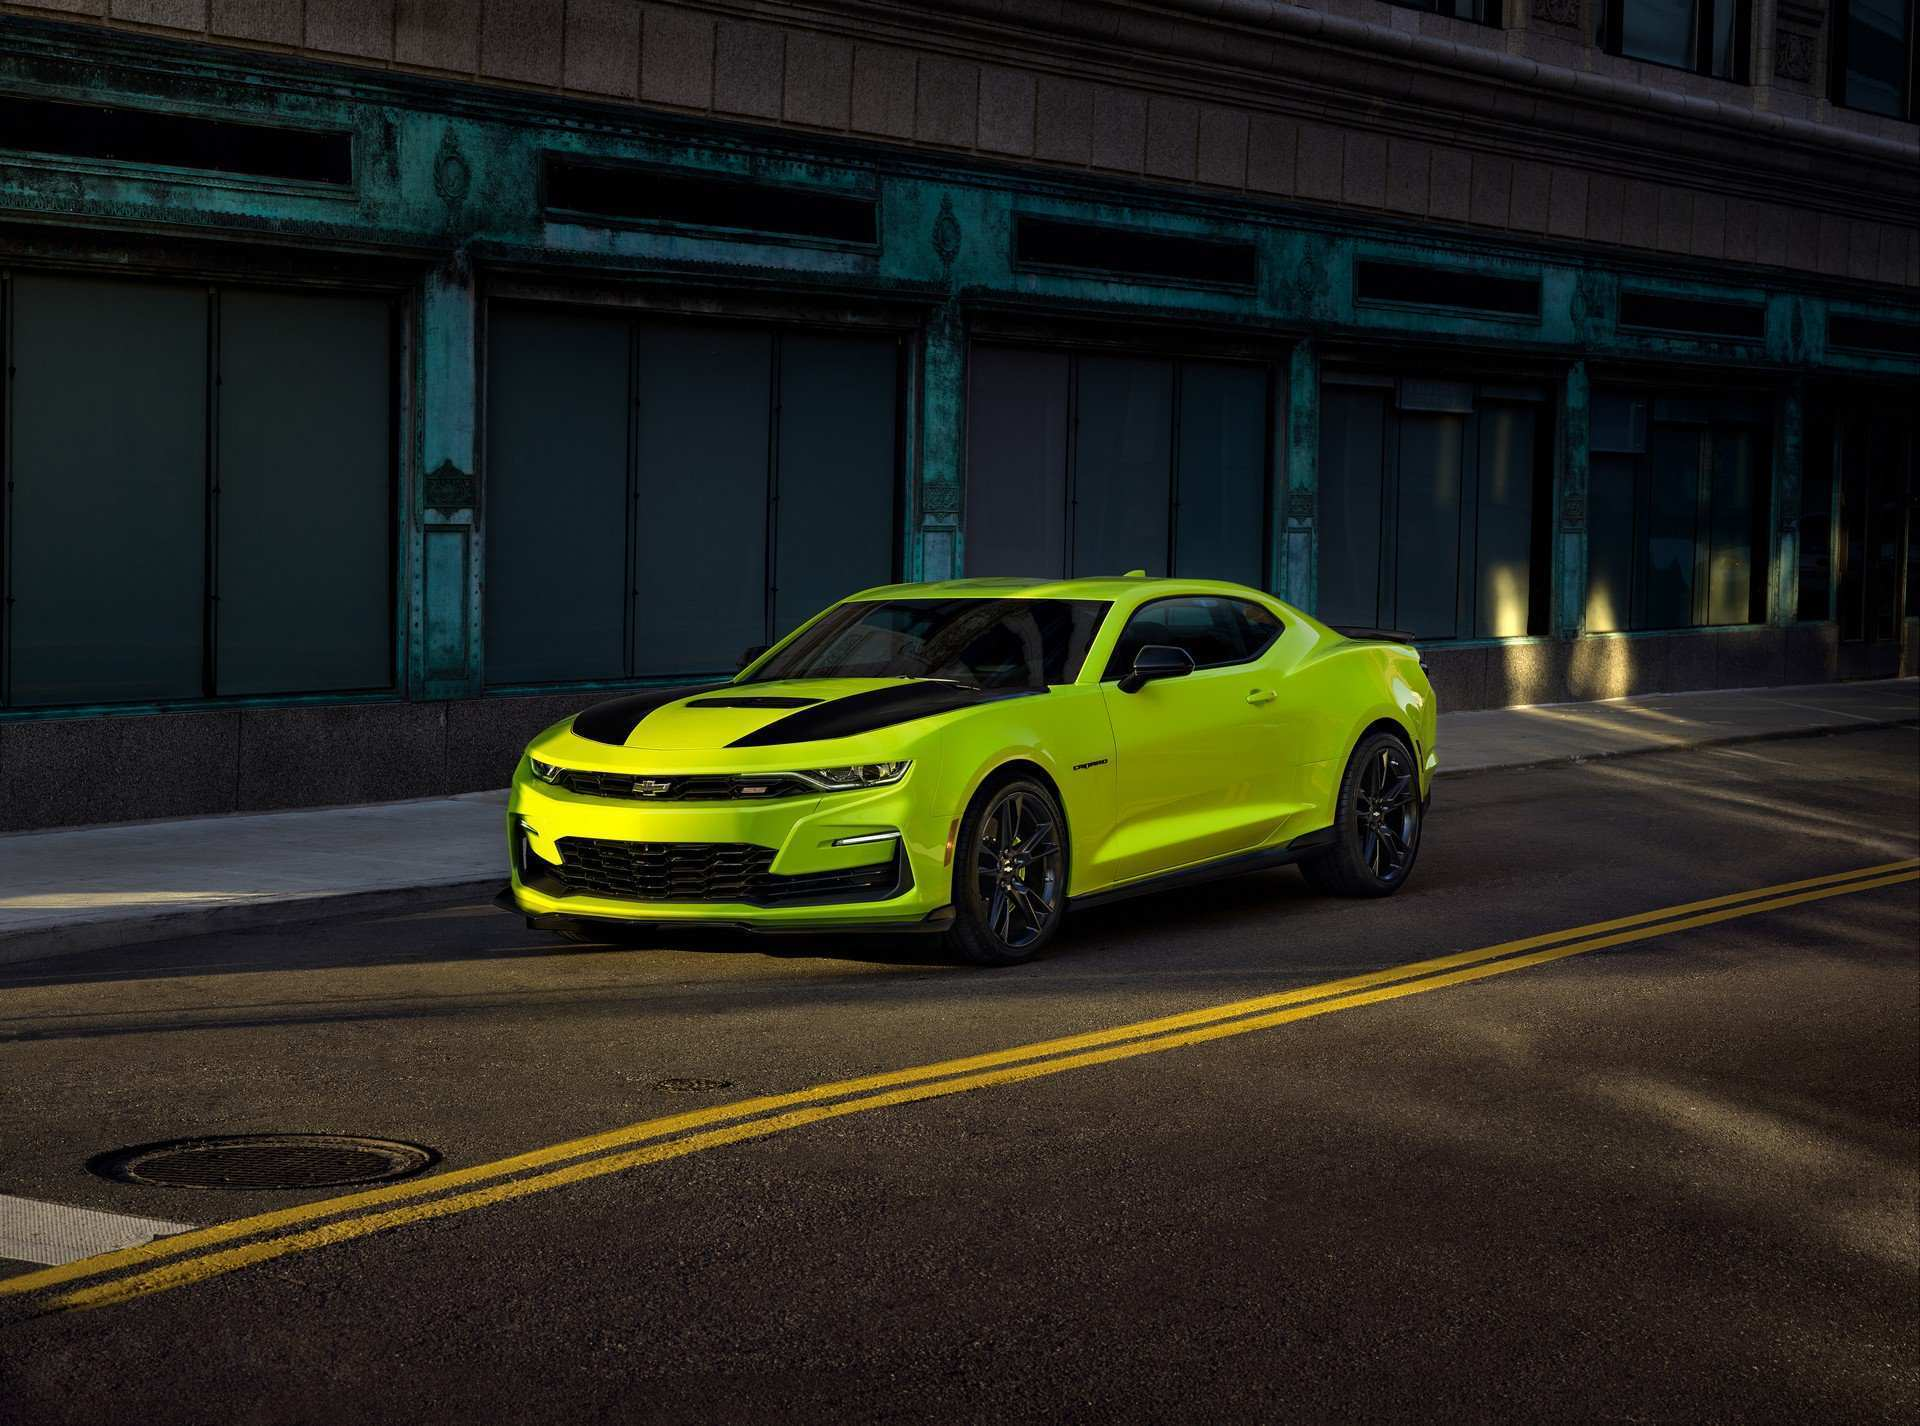 21 New 2020 The Camaro Ss Images by 2020 The Camaro Ss